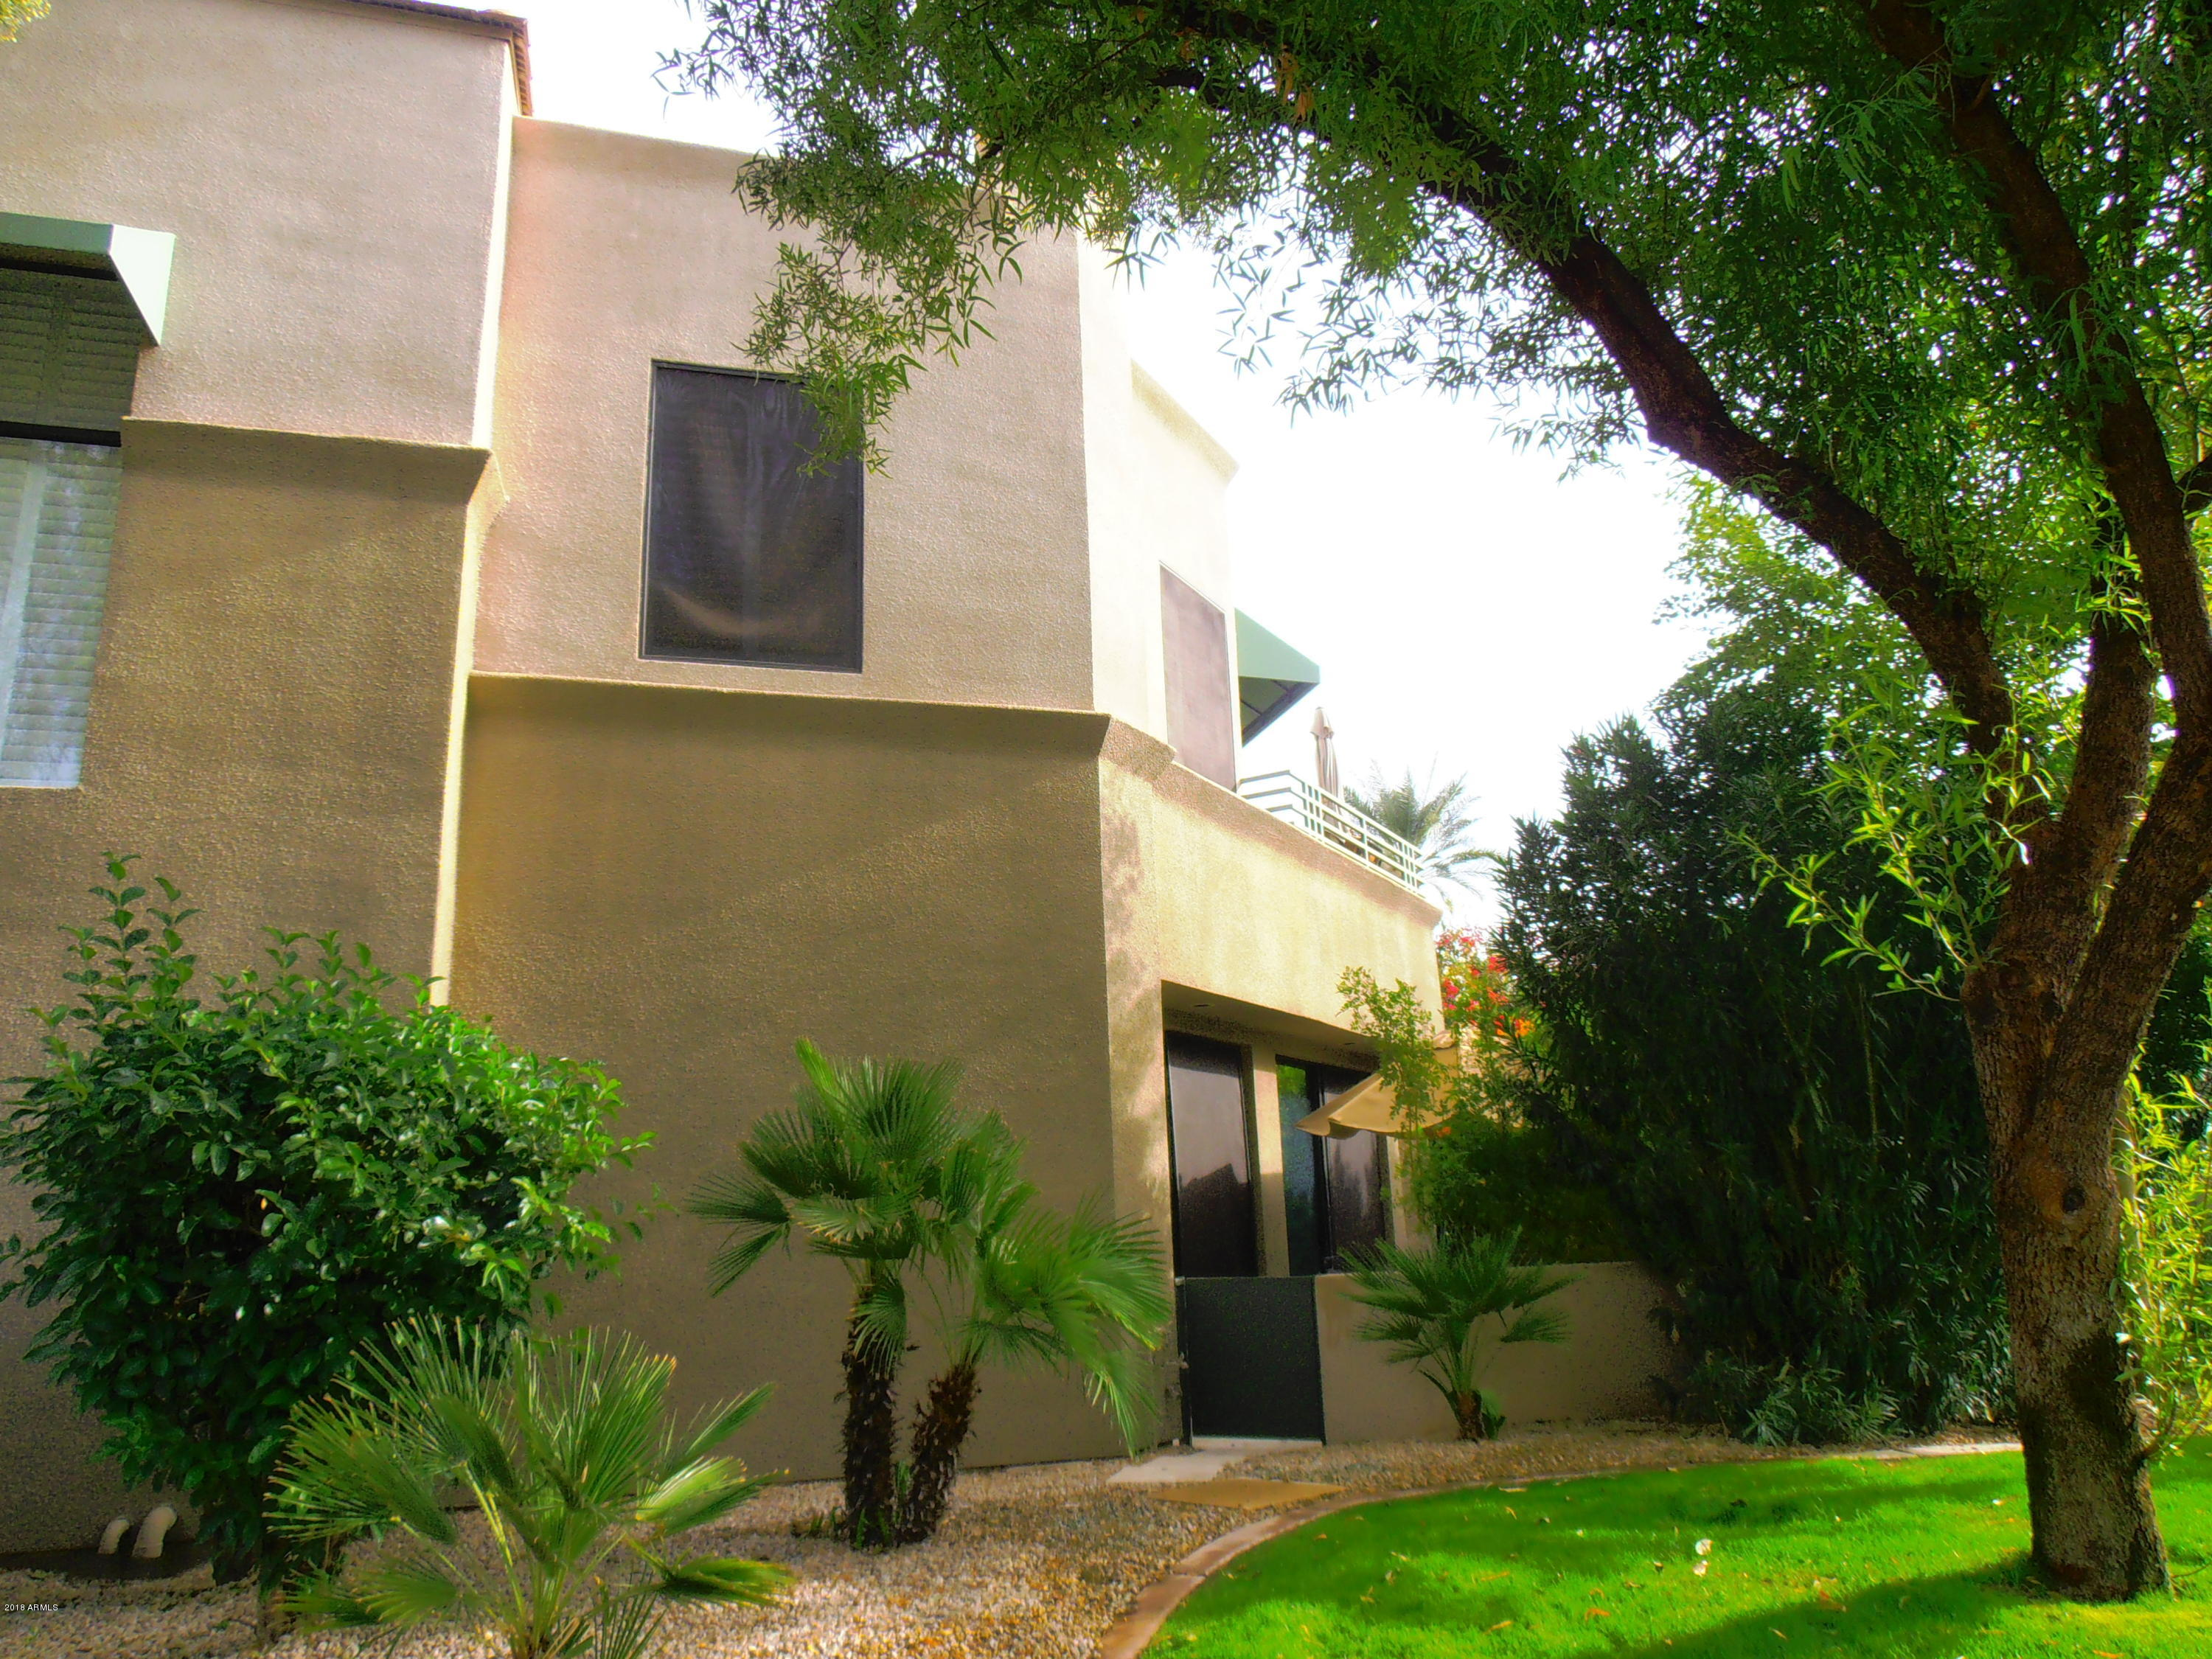 MLS 5788915 8989 N GAINEY CENTER Drive Unit 147, Scottsdale, AZ 85258 Scottsdale AZ Gainey Ranch